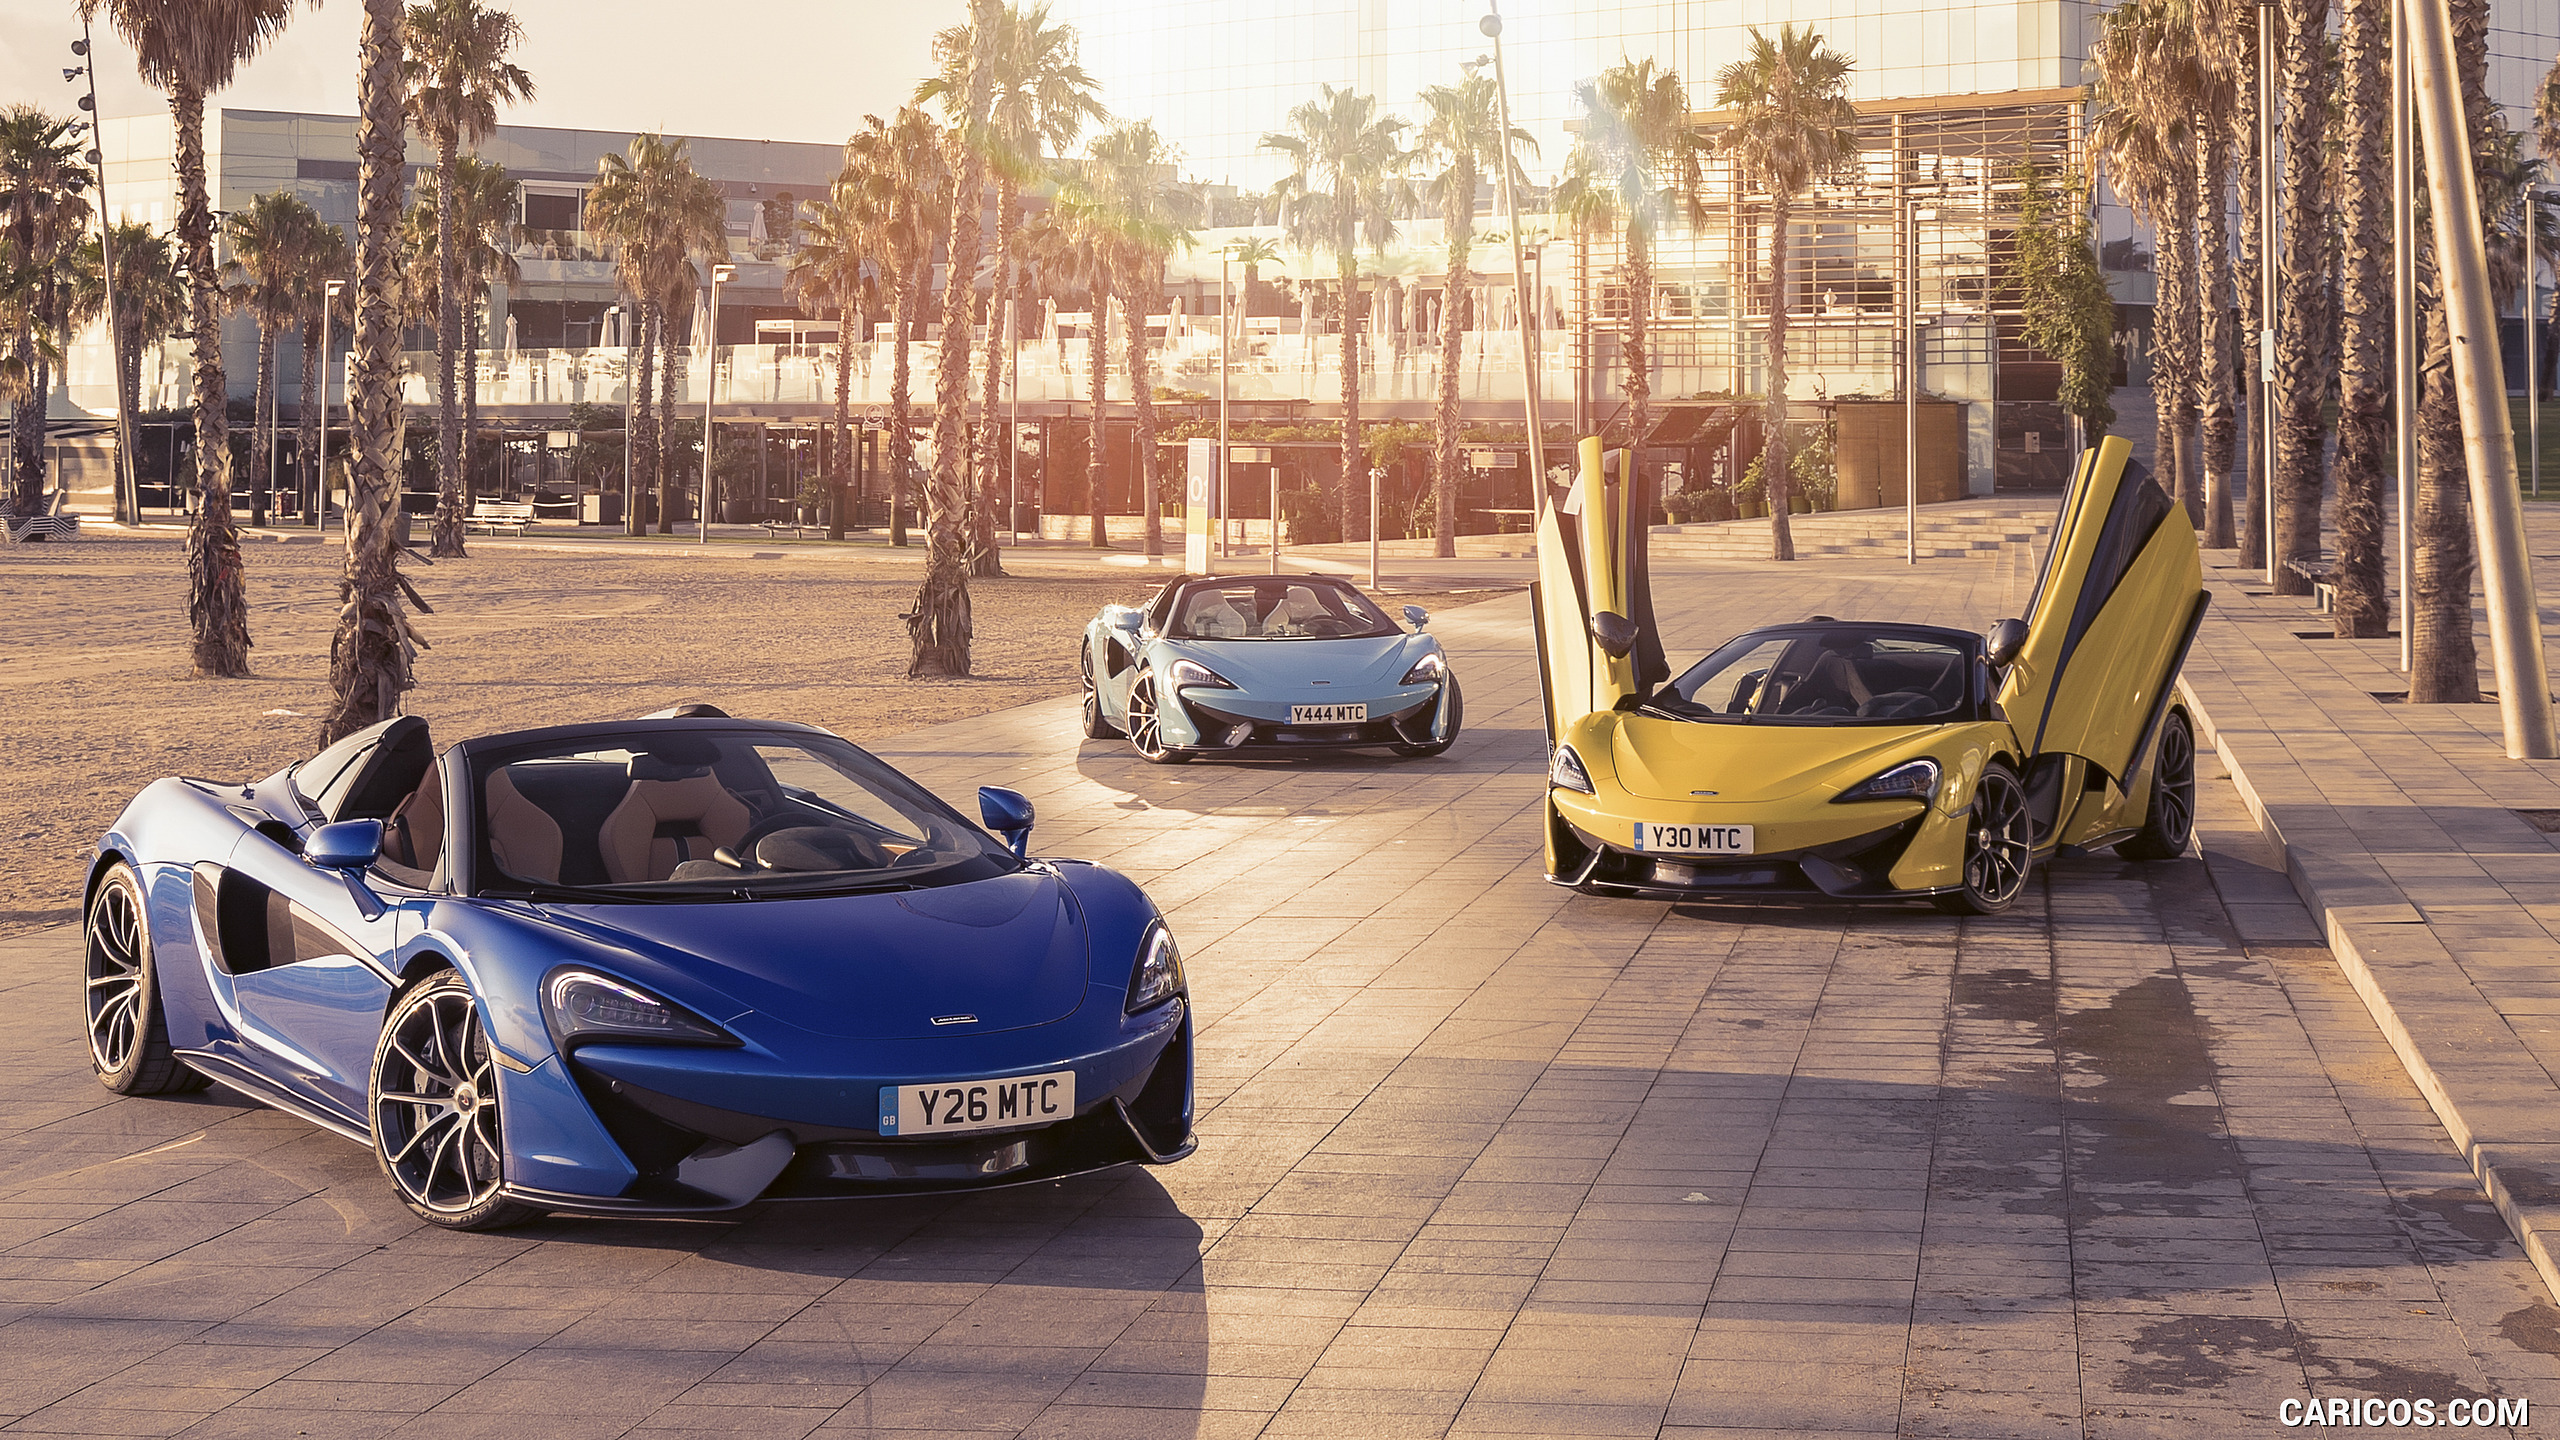 2018 McLaren 570S Spider HD Wallpaper 34 2560x1440